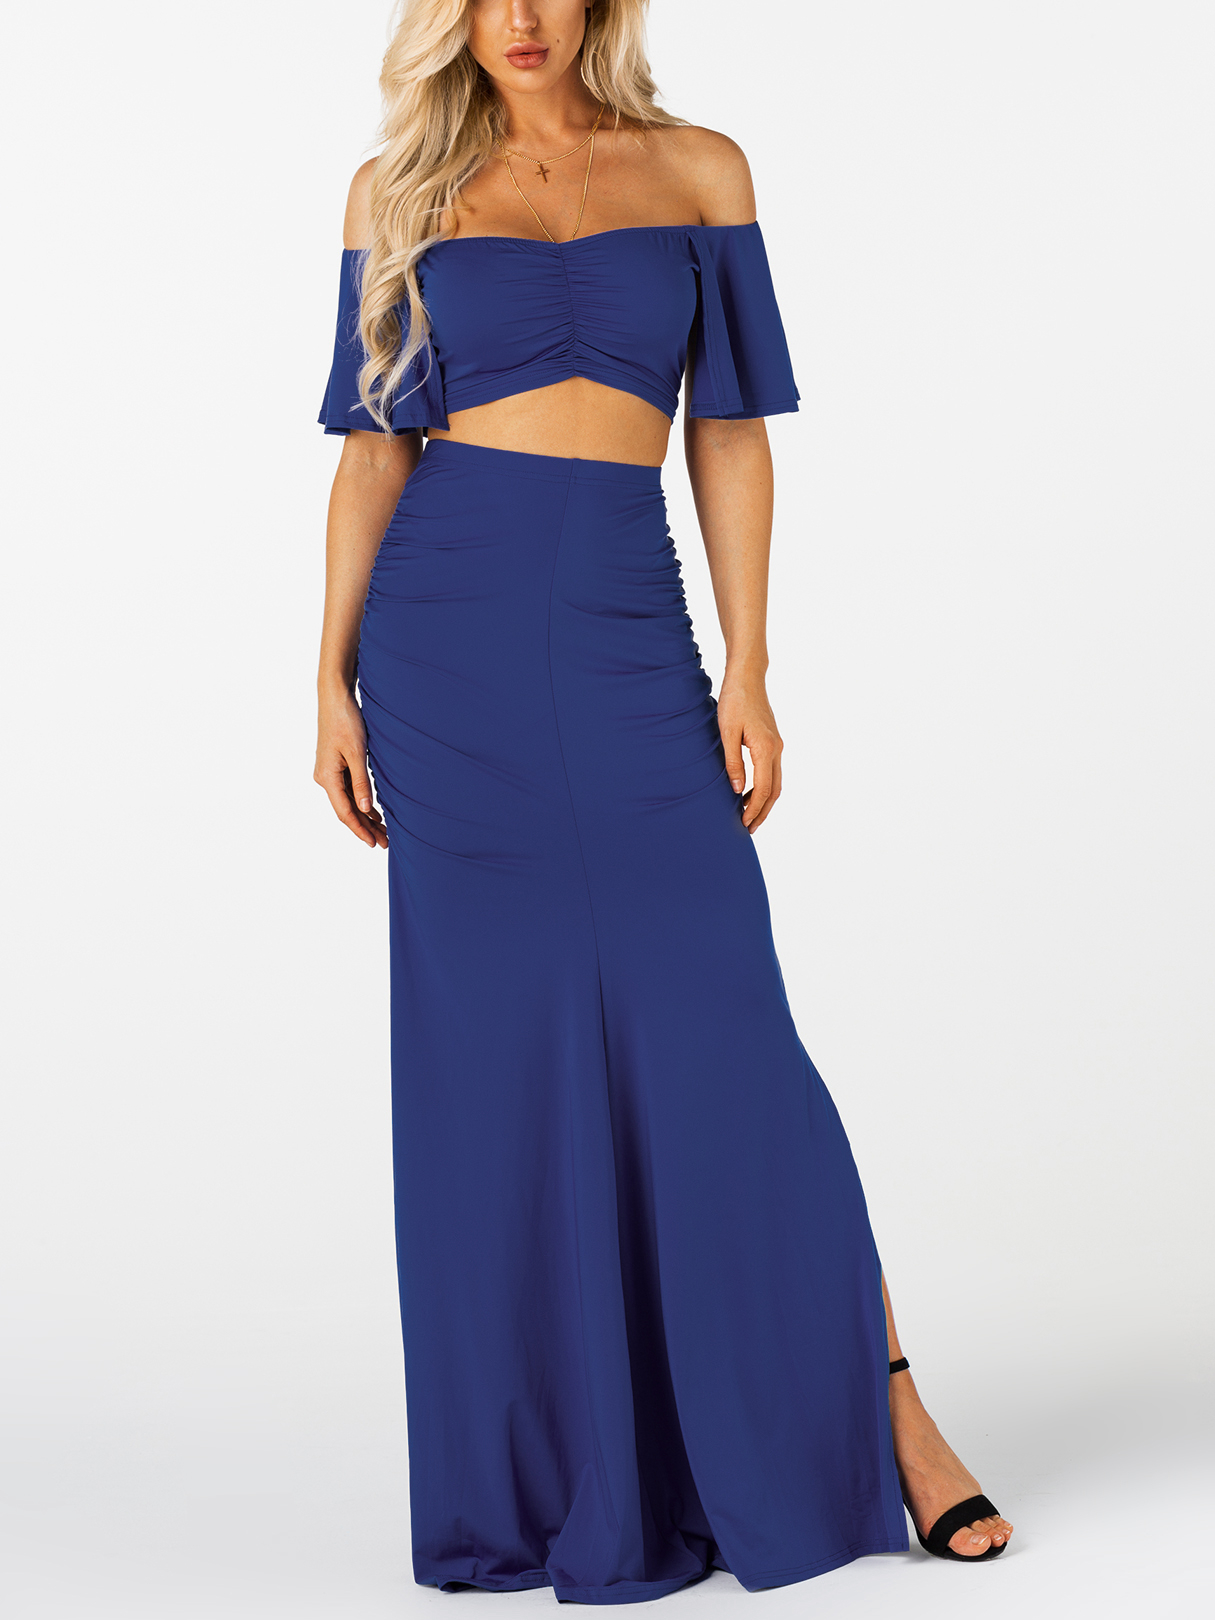 Royal Blue Ruched Bodycon Sexy Two Piece Outfits white ruched bodycon sexy two piece outfits